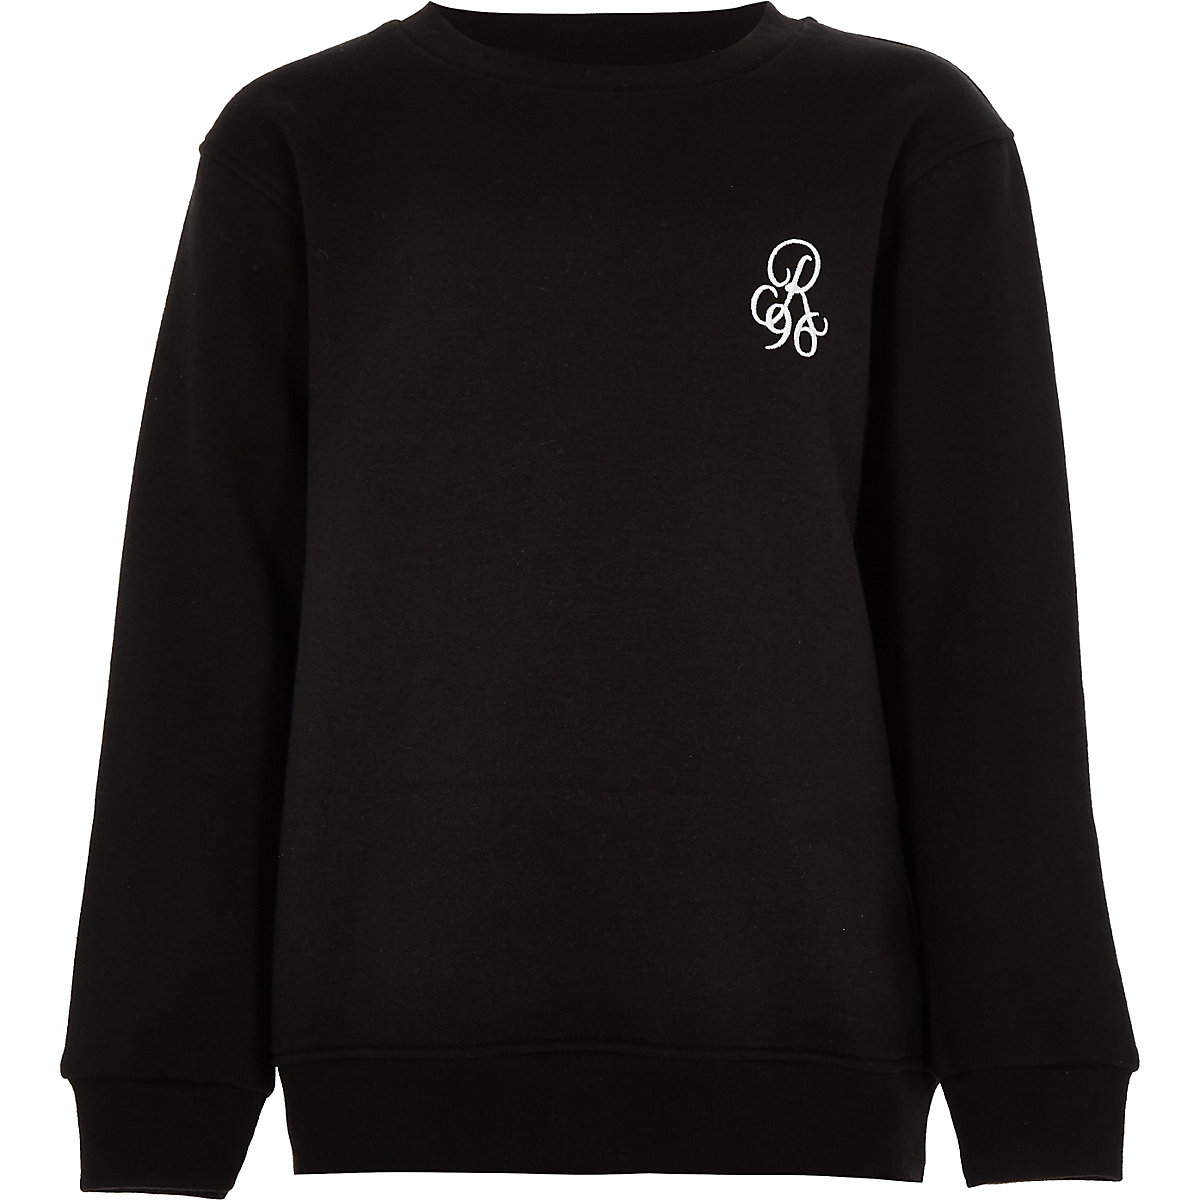 Boys black 'R96' sweatshirt